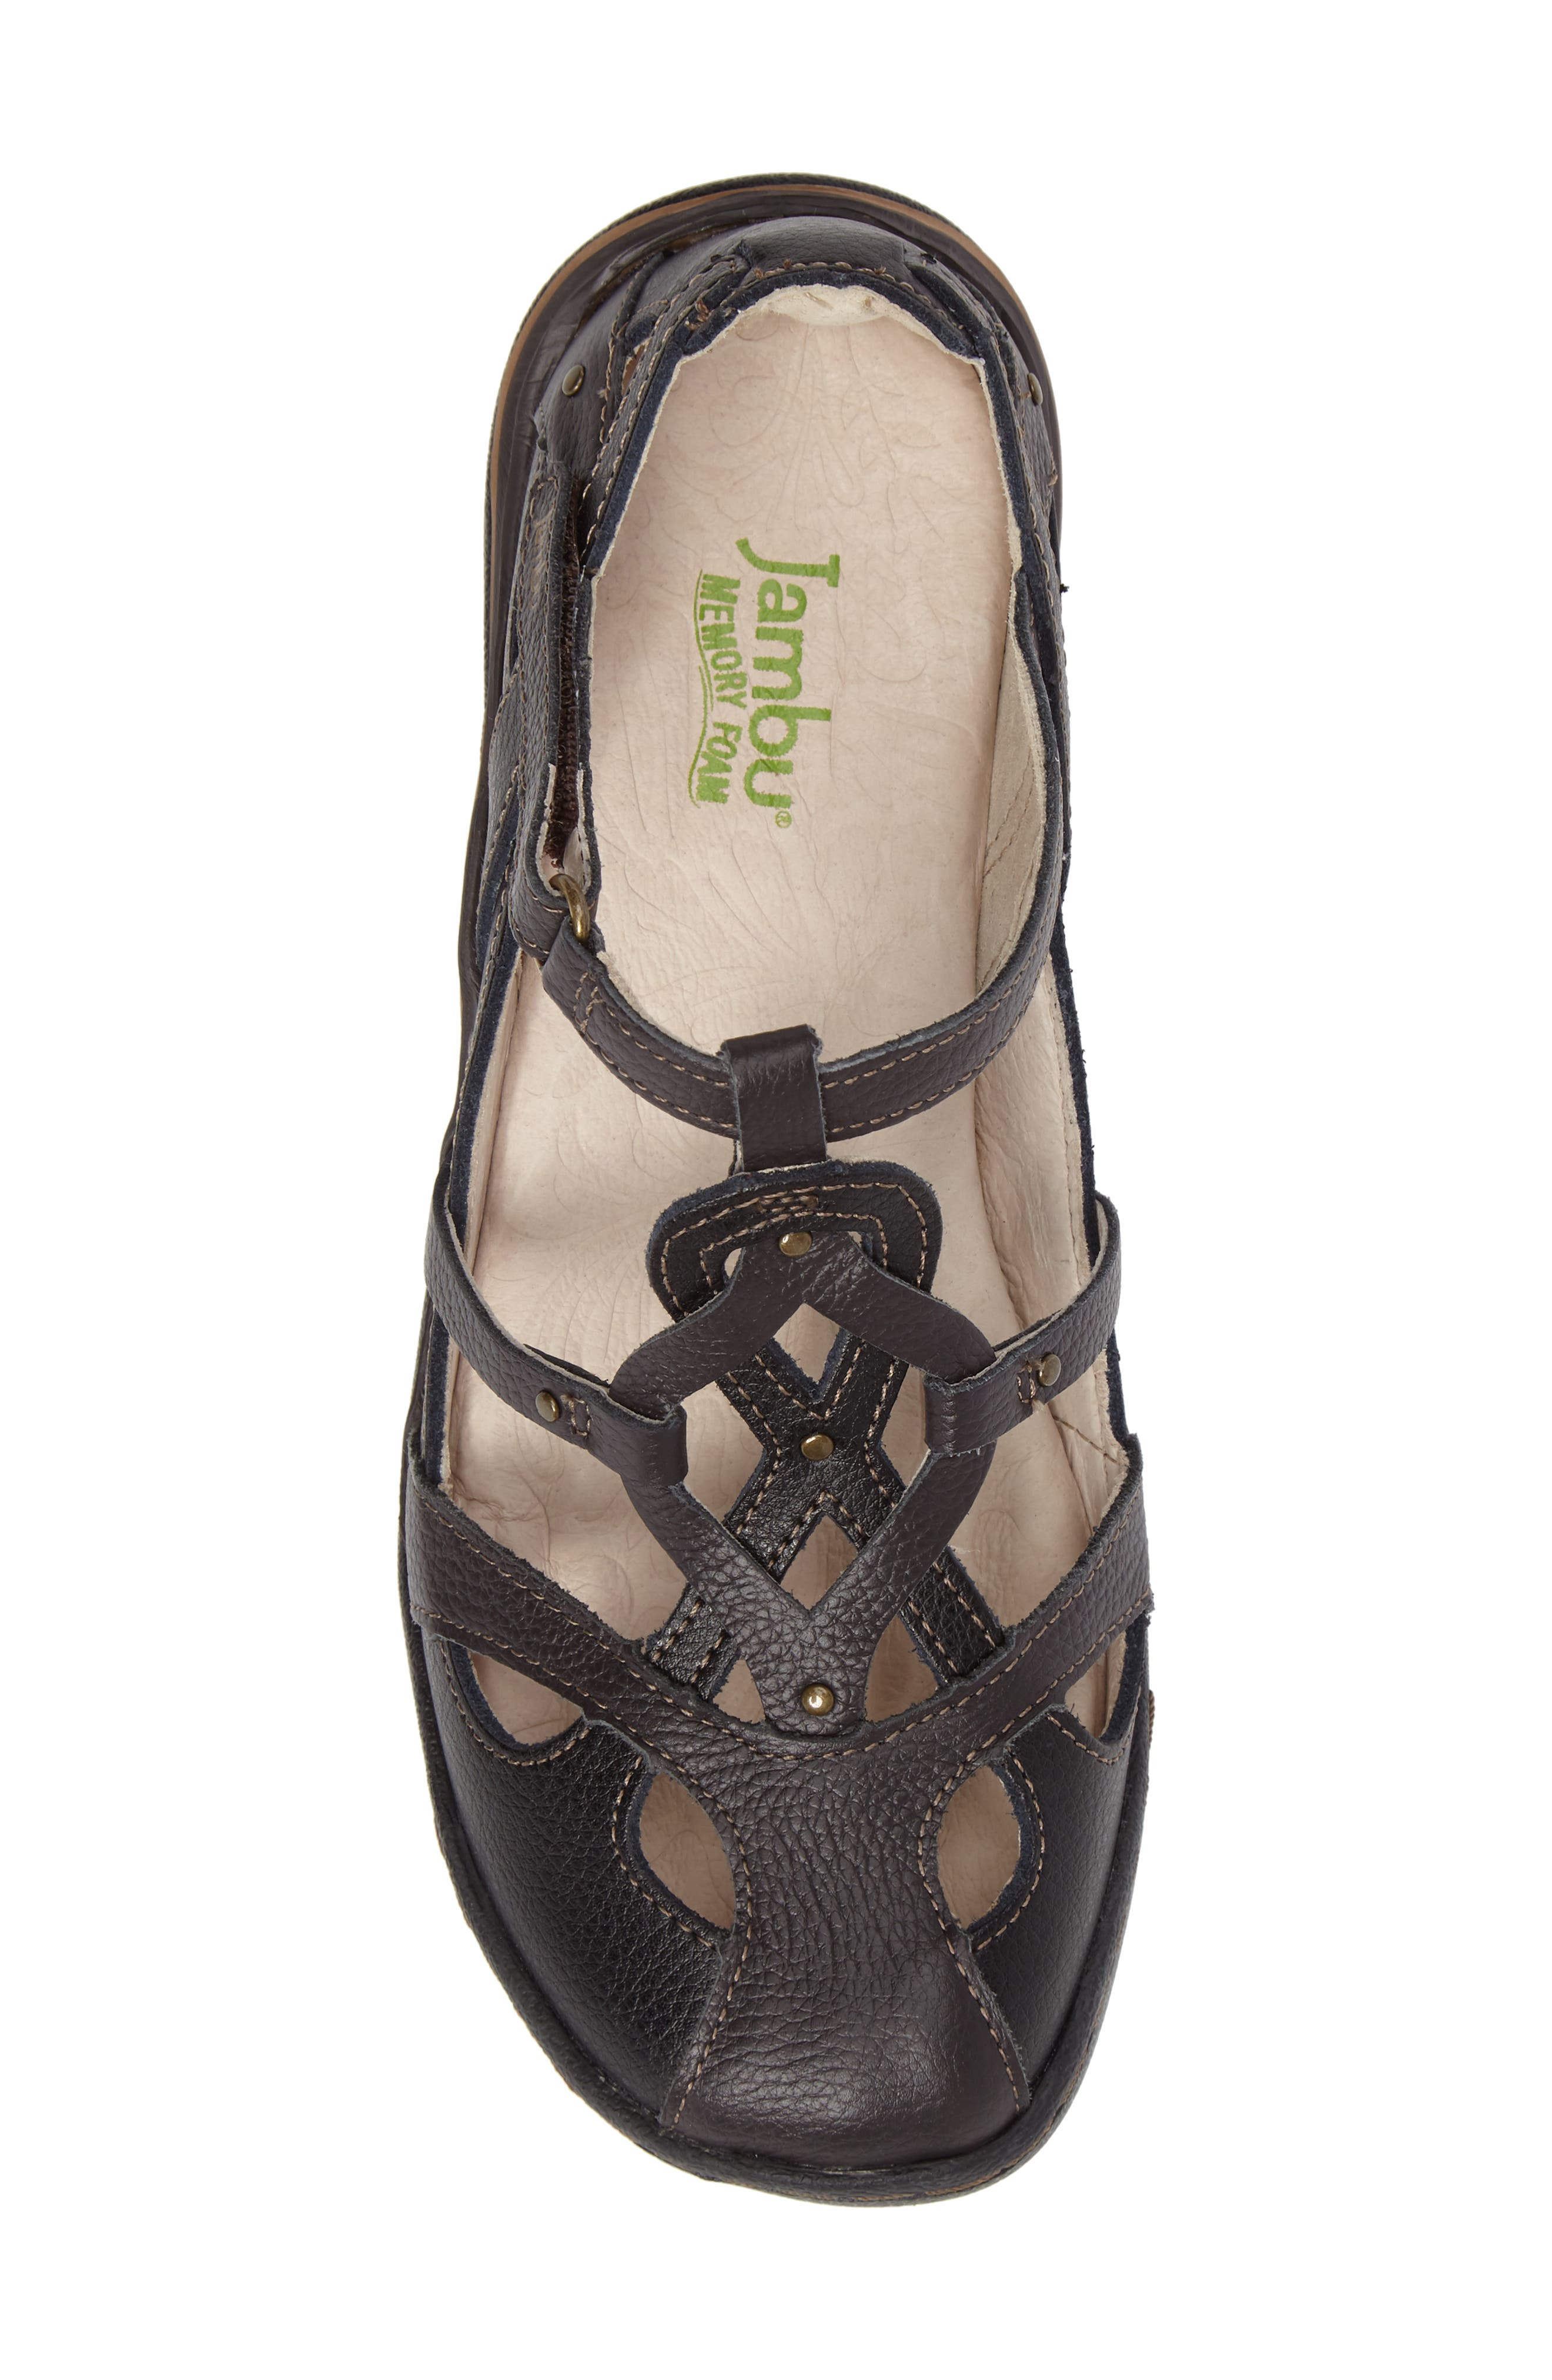 Spain Studded Strappy Sneaker,                             Alternate thumbnail 5, color,                             Black Leather